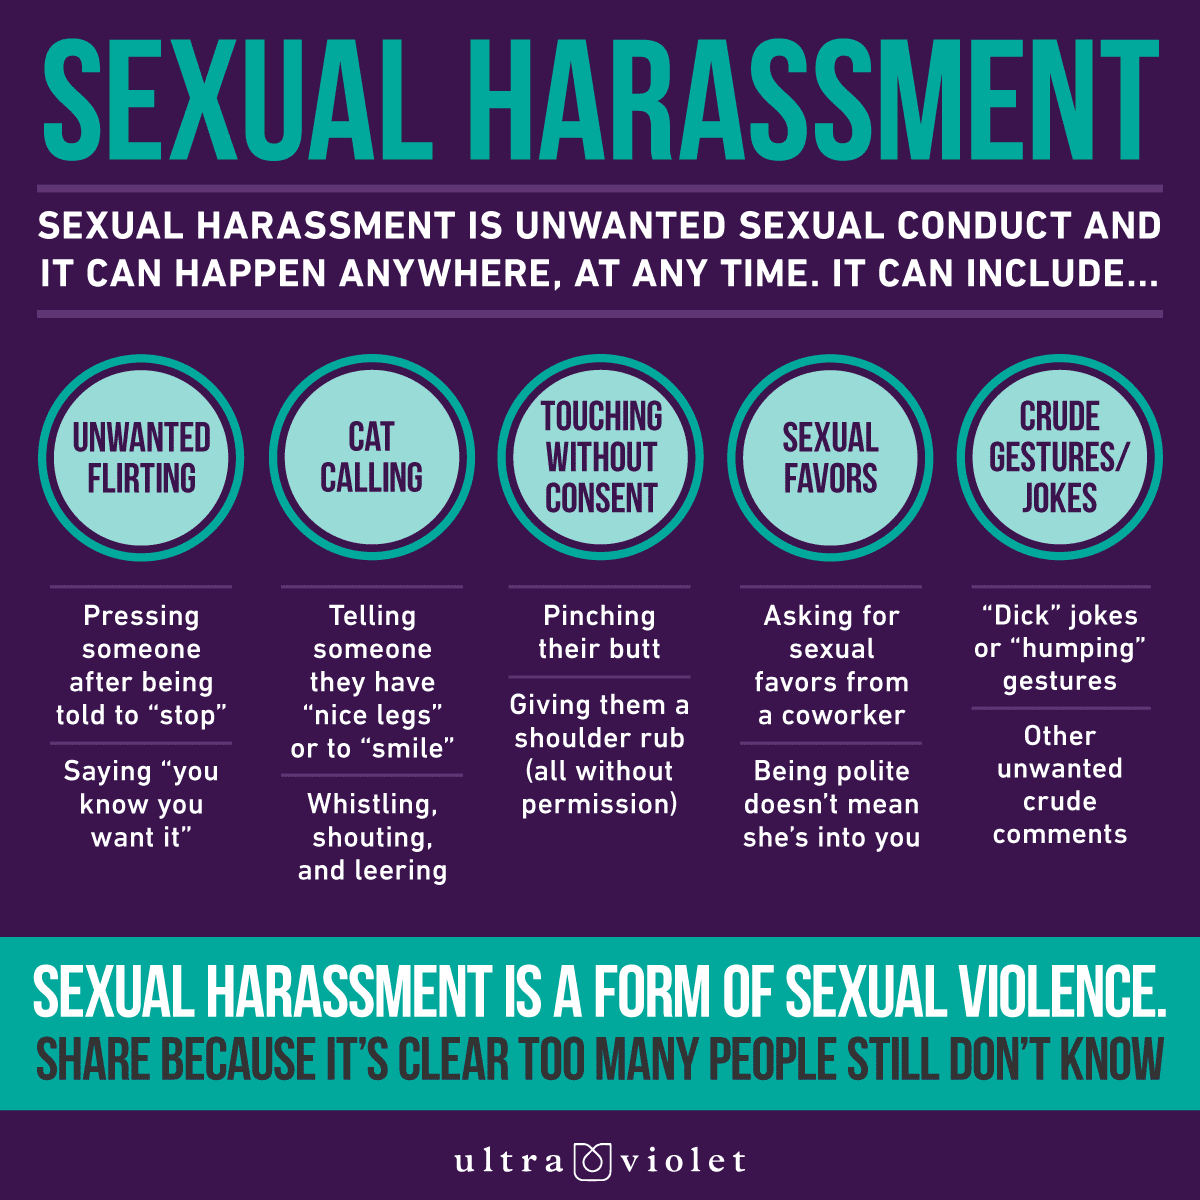 Consequences of sexual harassment